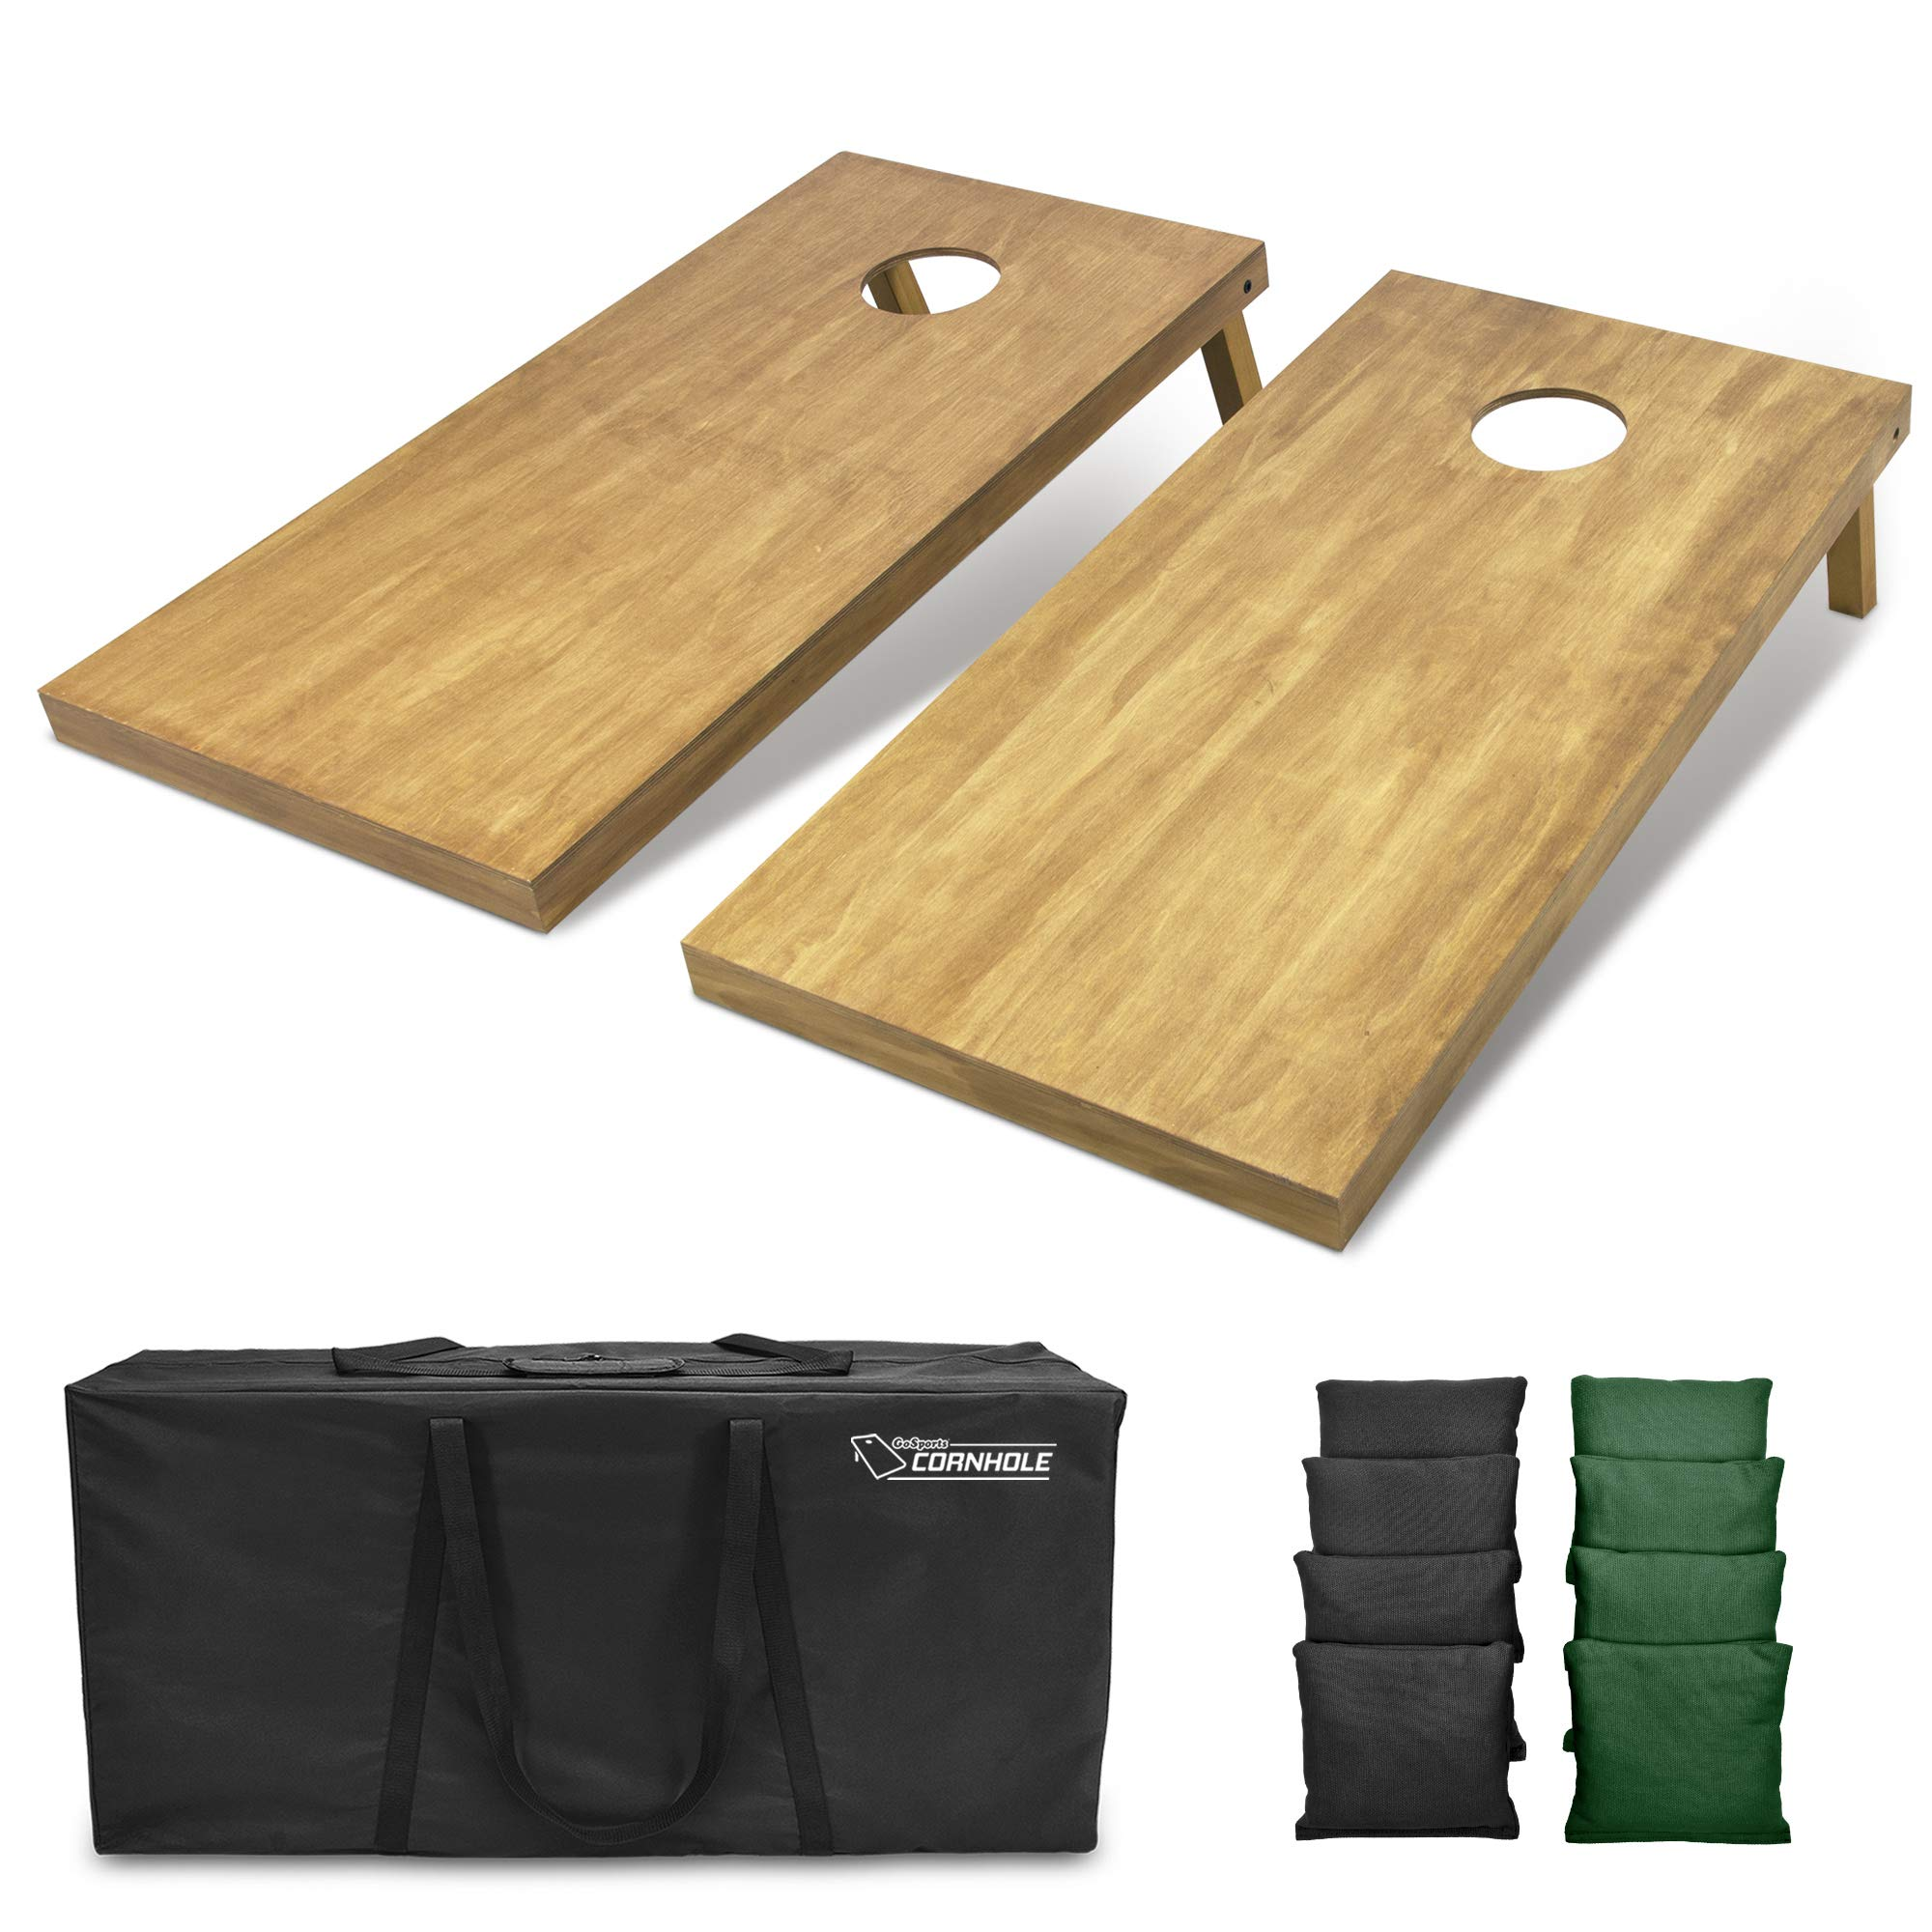 GoSports 4'x2' Regulation Size Wooden Cornhole Boards Set | Includes Carrying Case and Bean Bags (Choose Your Colors) Over 100 Color Combinations